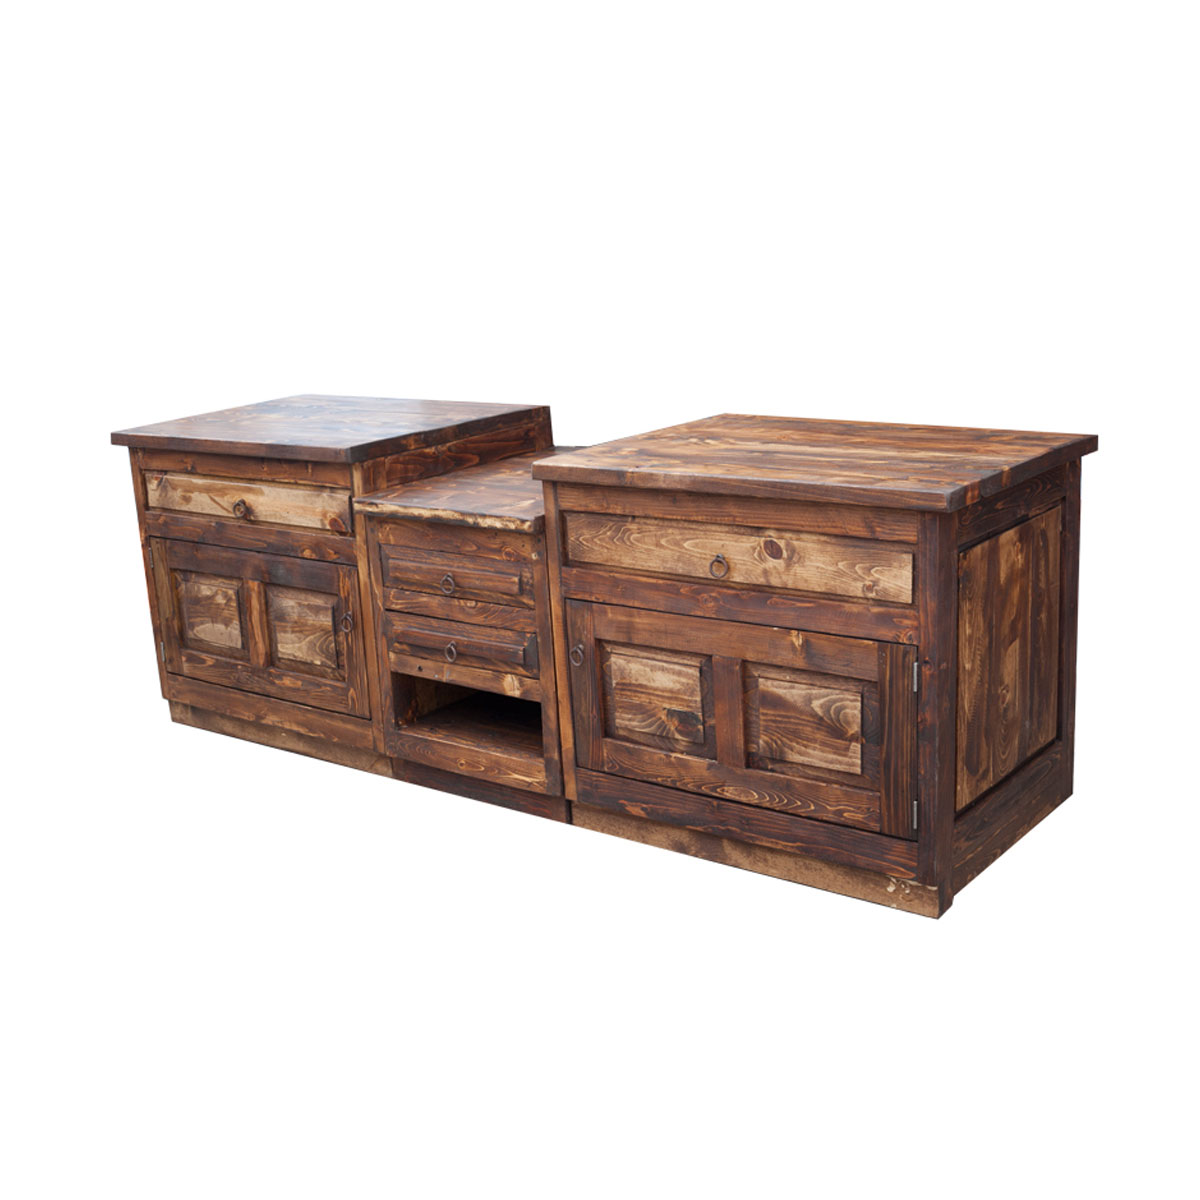 Order Bowie Rustic Vanity Online : 15 from foxdendecor.com size 1200 x 1200 jpeg 119kB